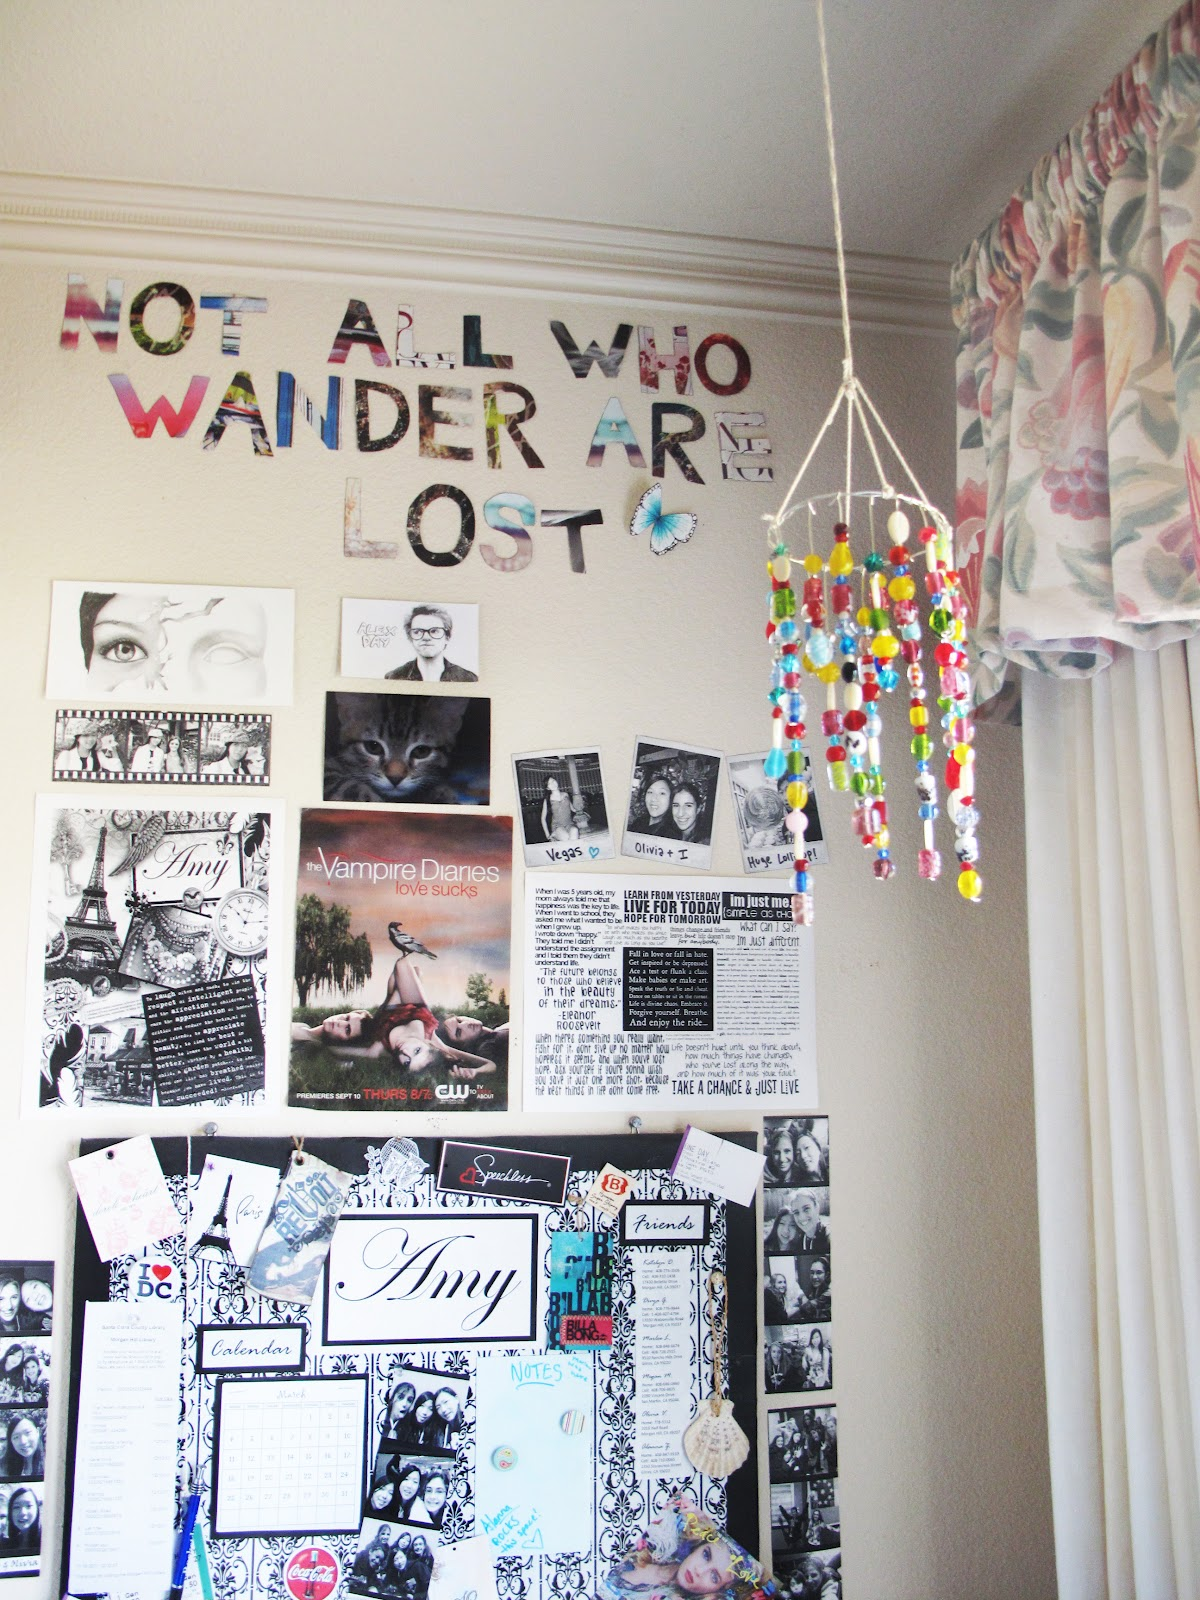 Paint the tears diy room decor - Cool decorations for your room ...